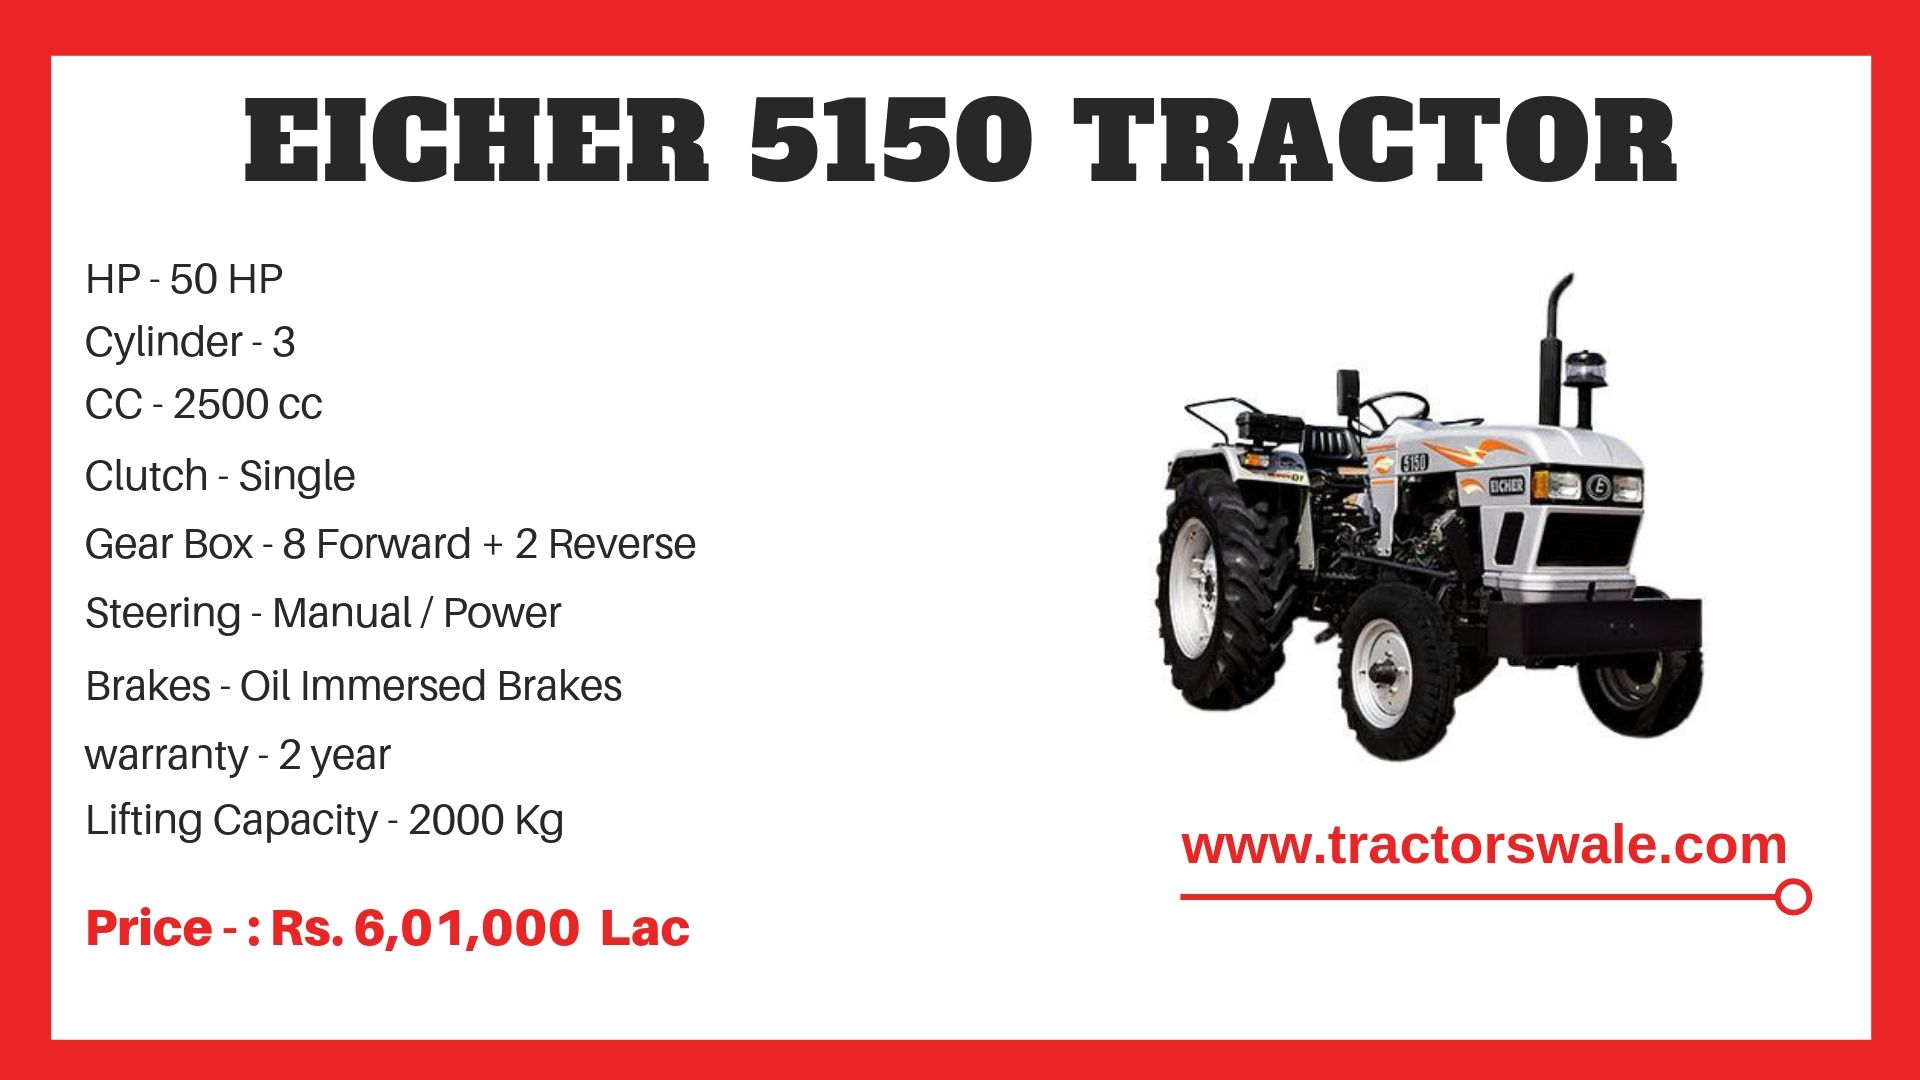 Eicher 5150 Tractor Model Specifications